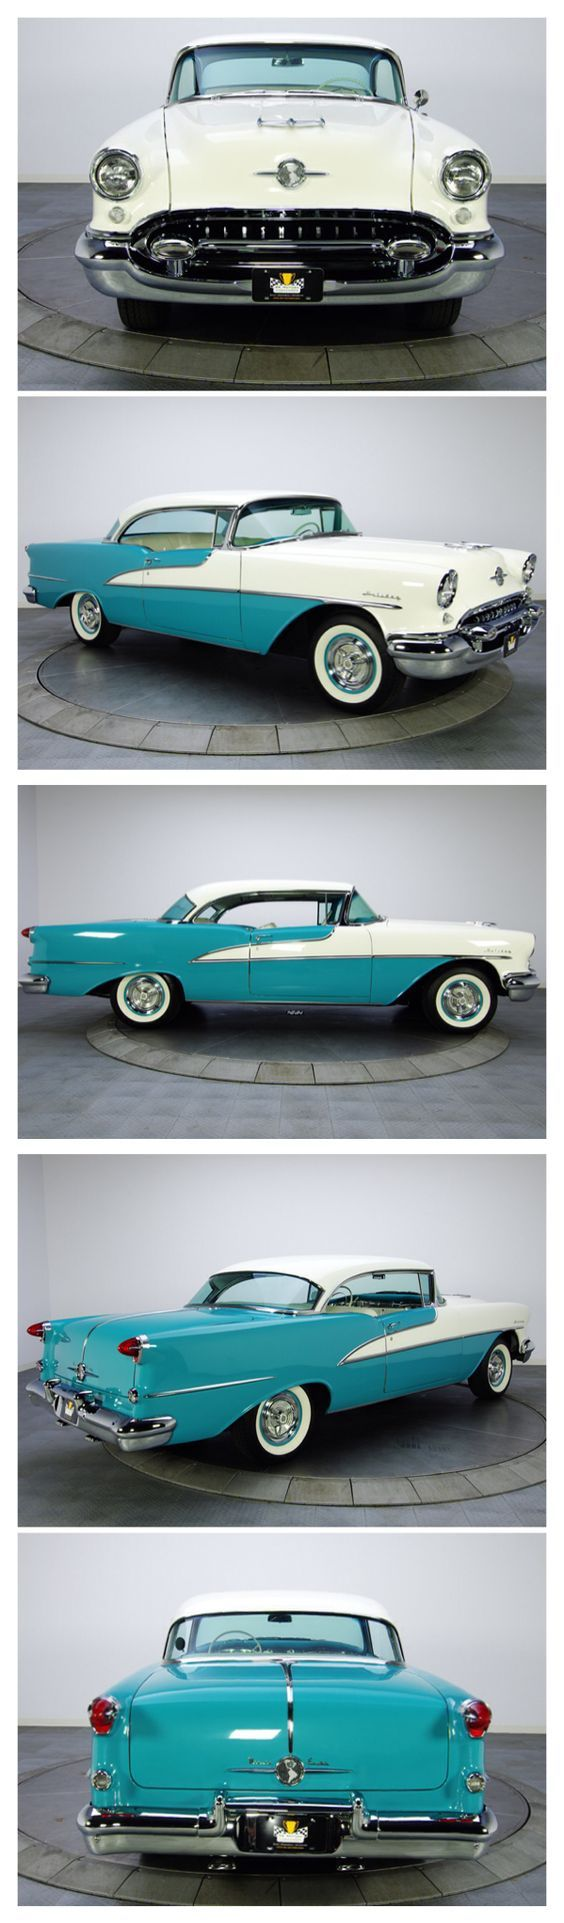 1956 chevrolet belair mjc classic cars pristine - Dad Had This Car How Cool